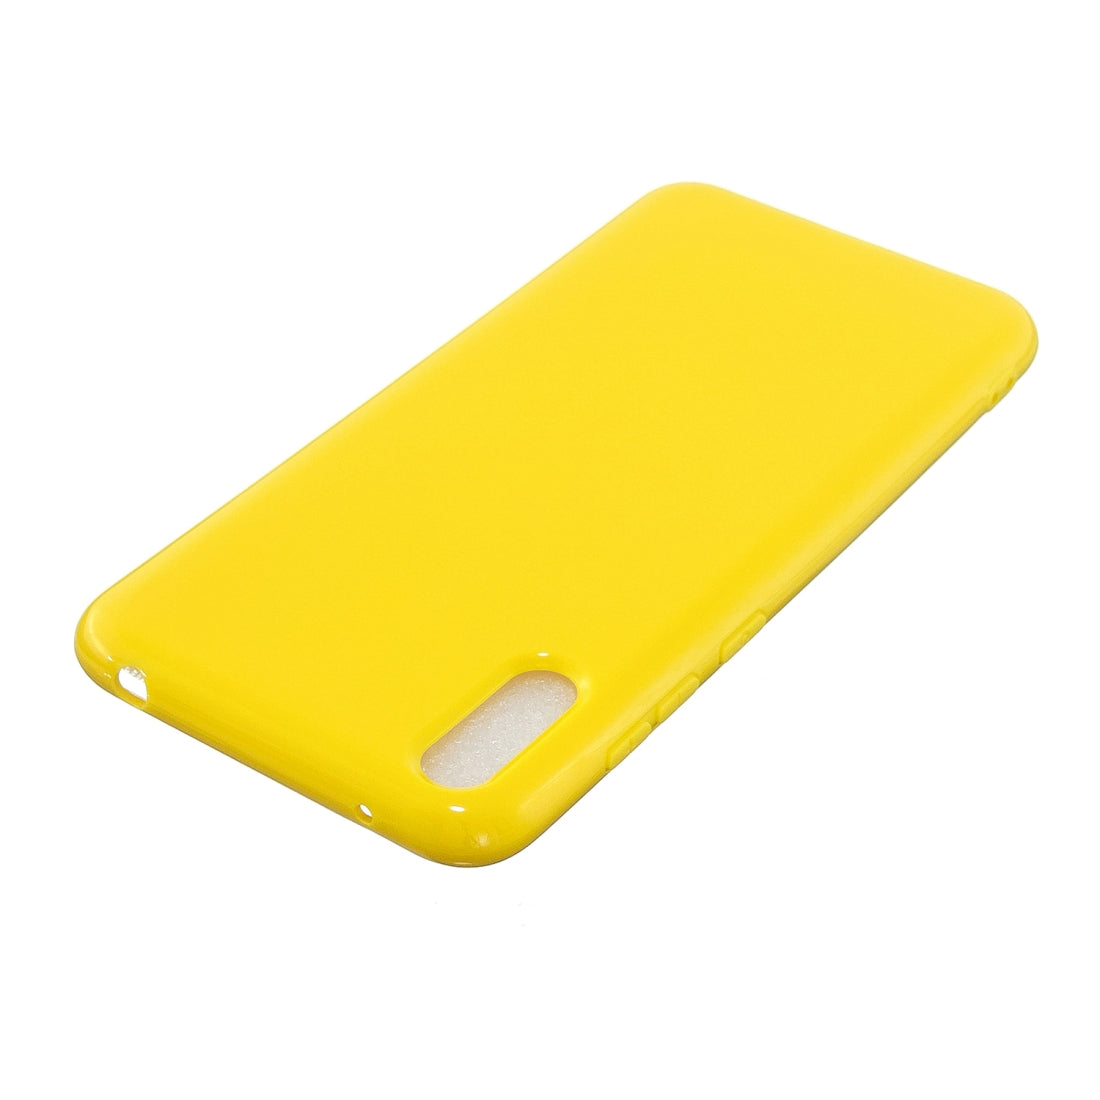 For Huawei Y7 Pro (2019) 2.0mm Thick TPU Candy Color Protective Case(Yellow)